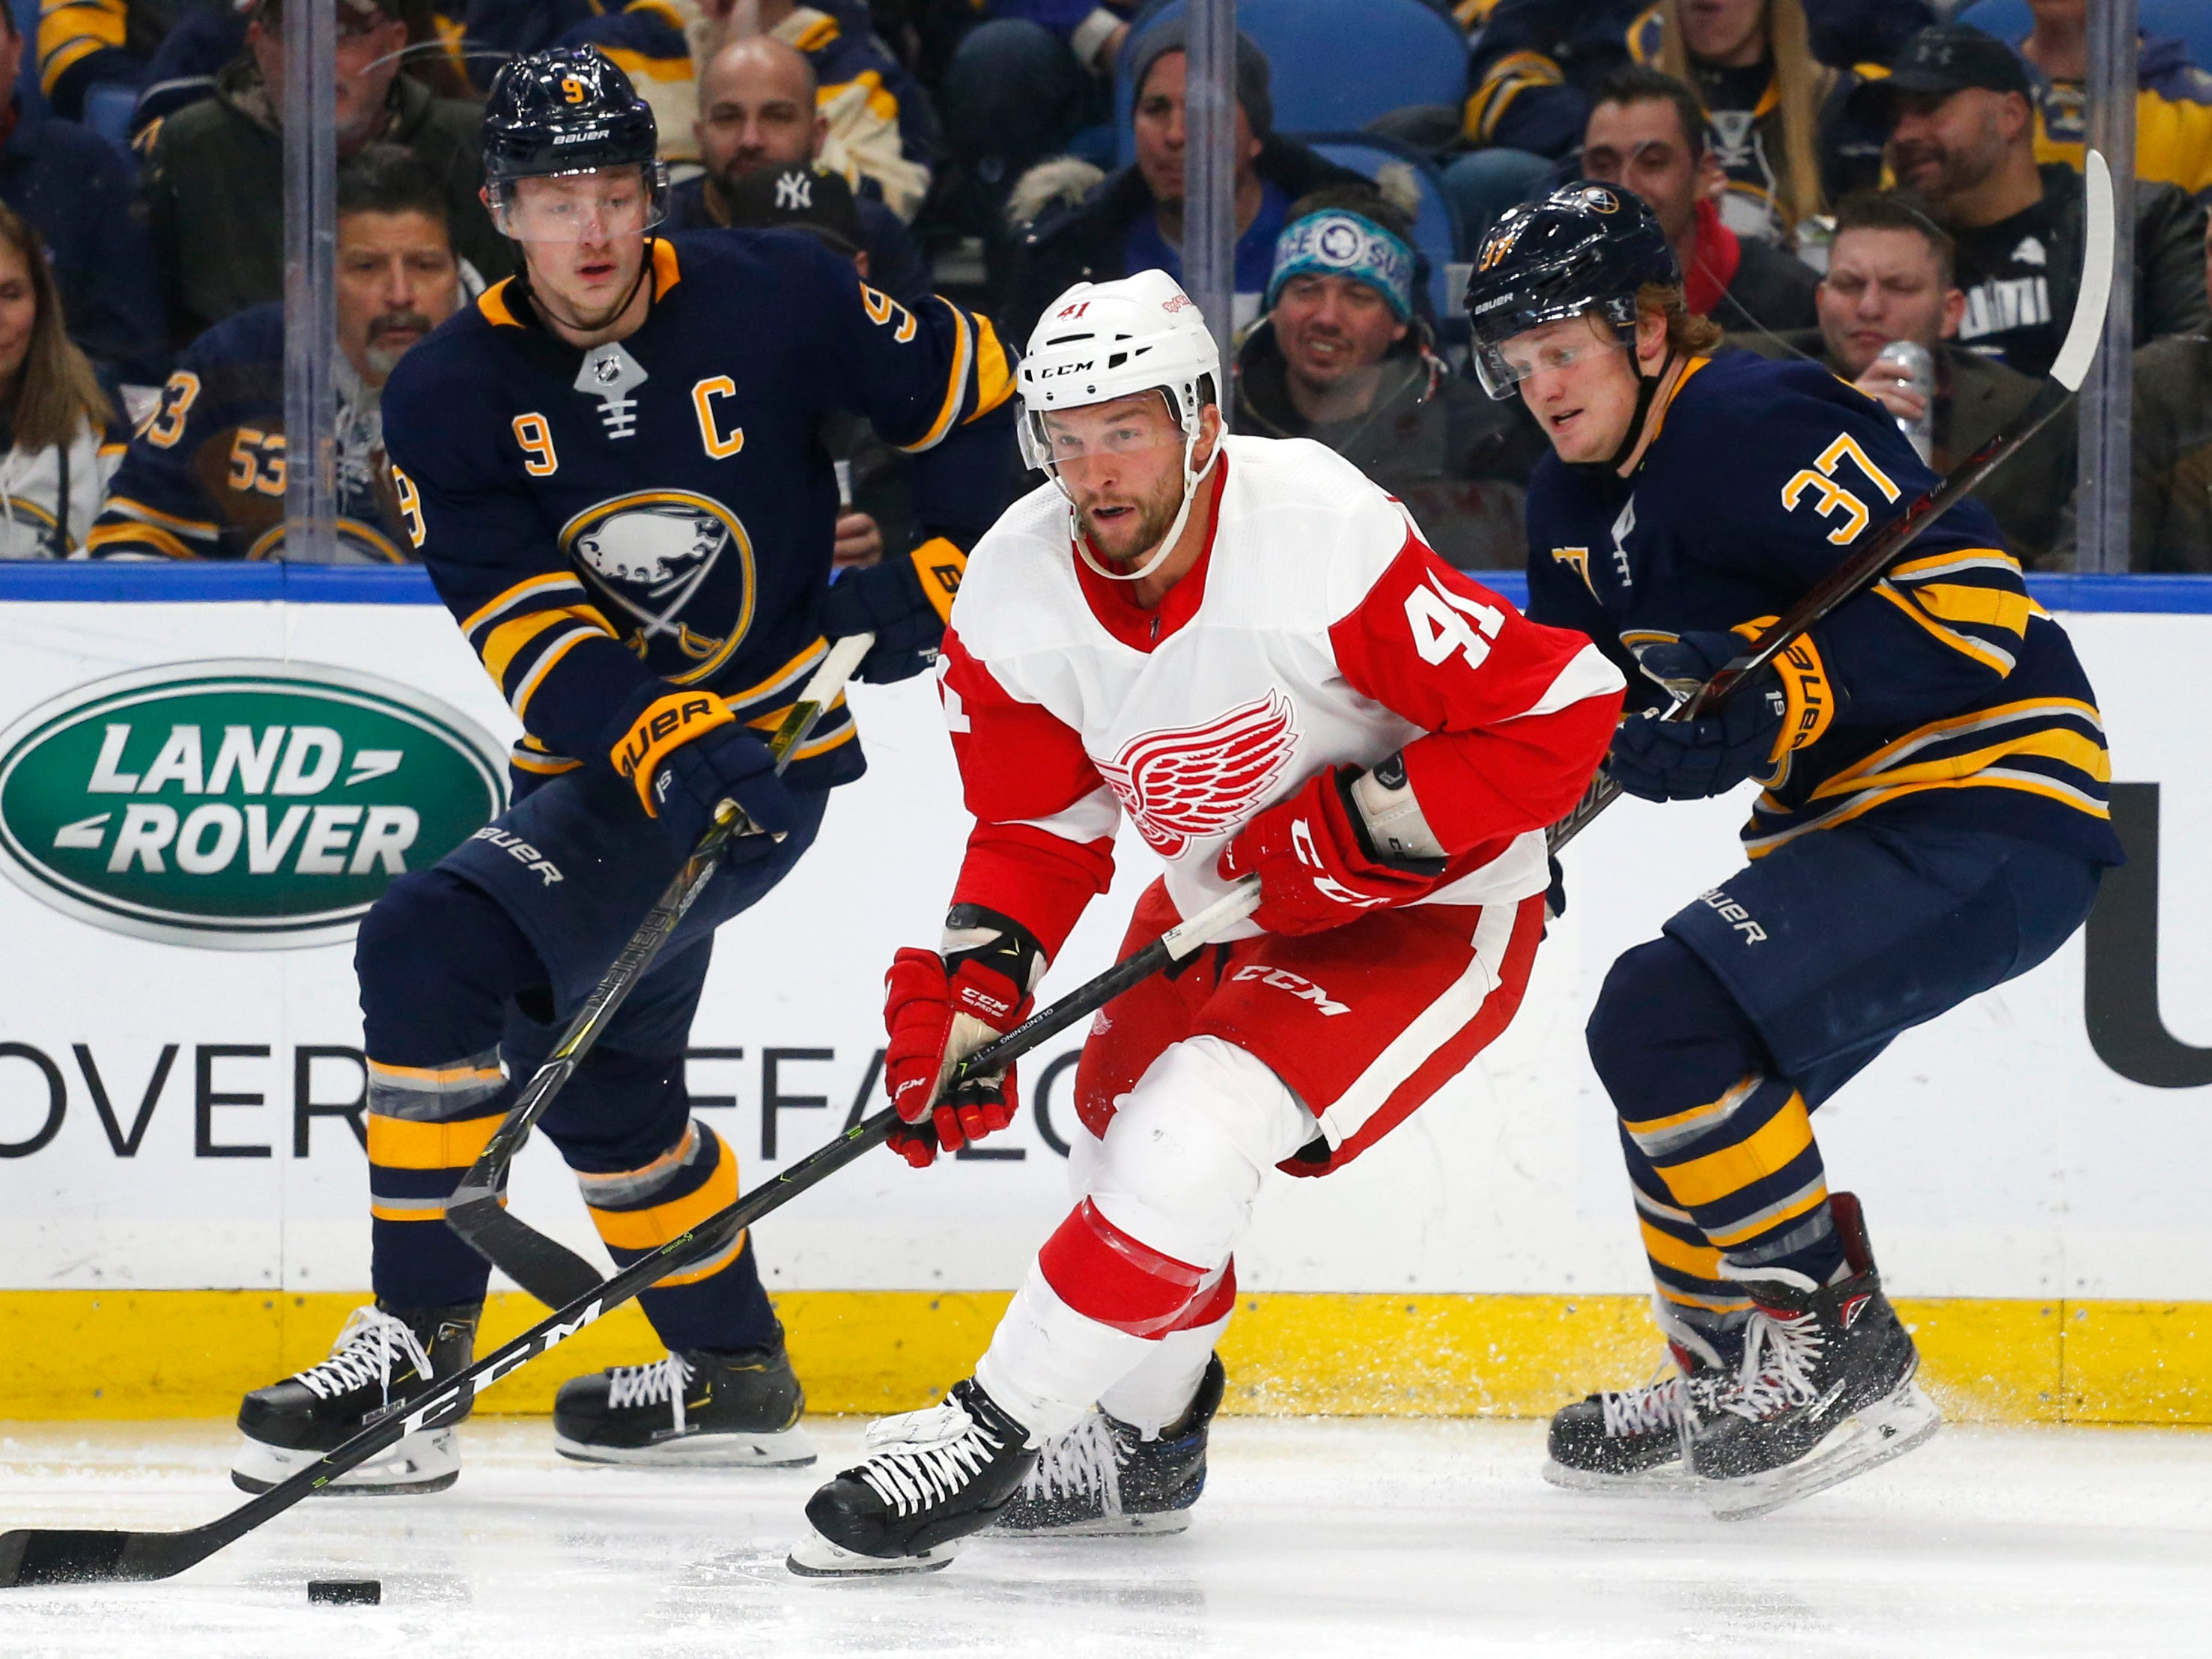 Red Wings forward Luke Glendening carries the puck past Sabres forwards Jack Eichel, left, and Casey Mittelstadt during the second period of the Wings' 3-1 loss on Saturday, Feb. 9, 2019, in Buffalo N.Y.